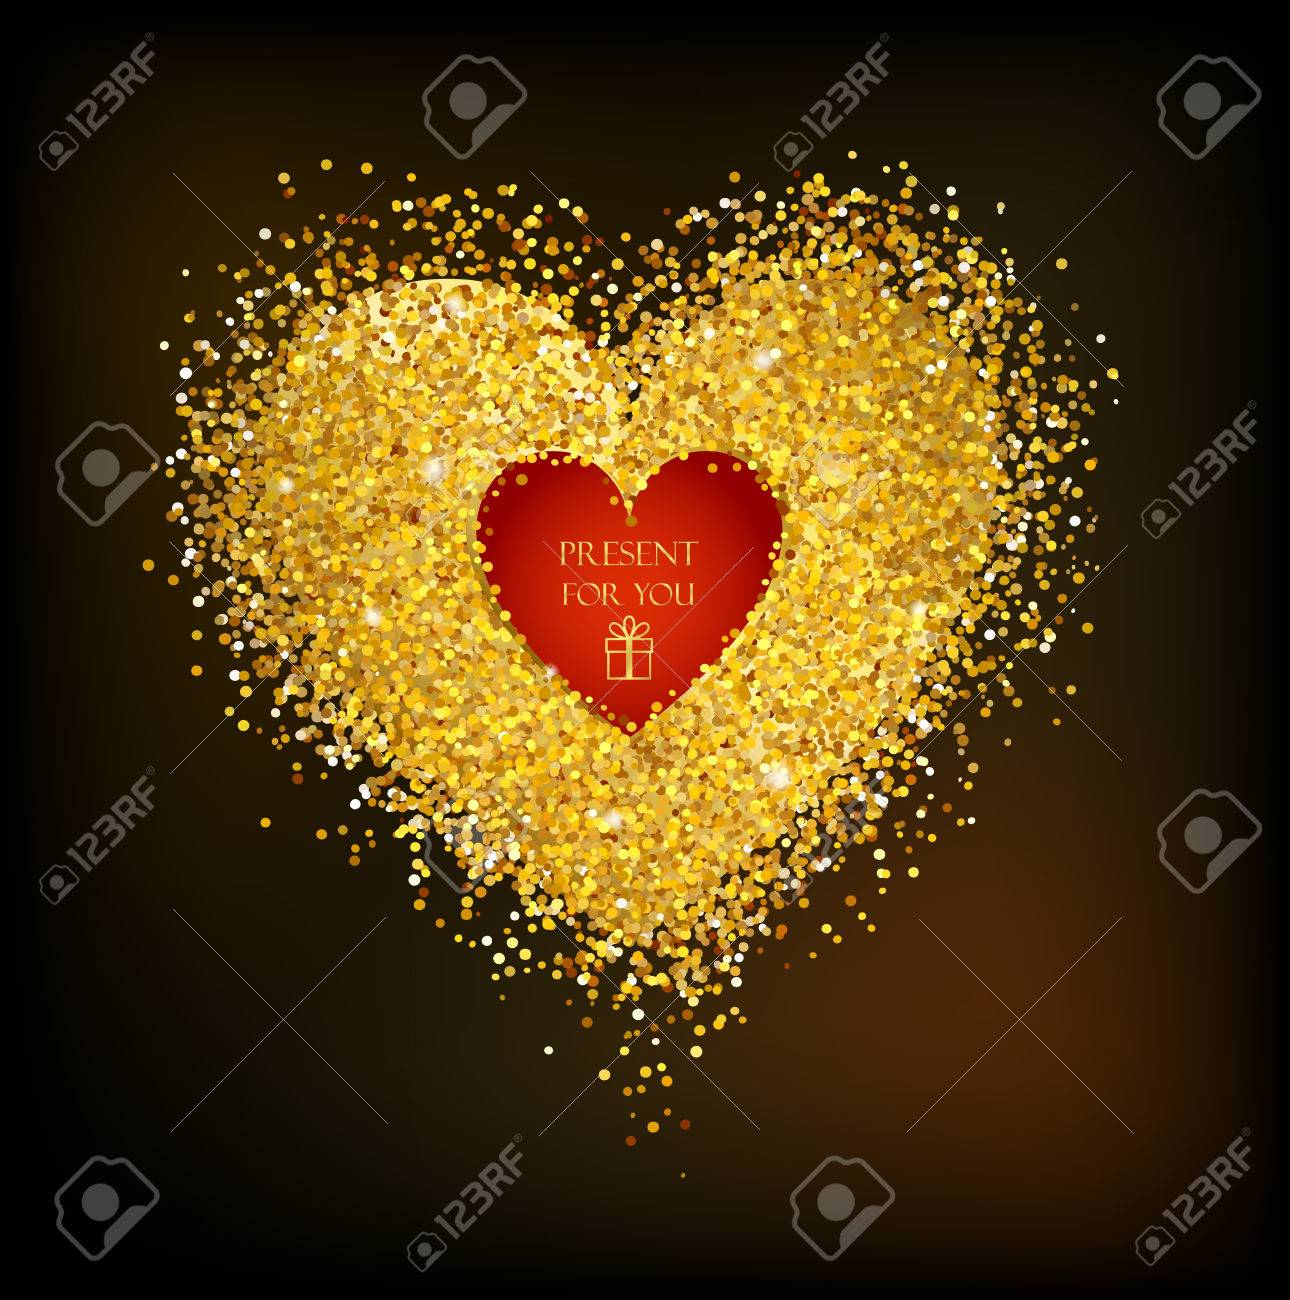 Golden frame in the shape of a heart made of golden confetti on black background. - 49780699